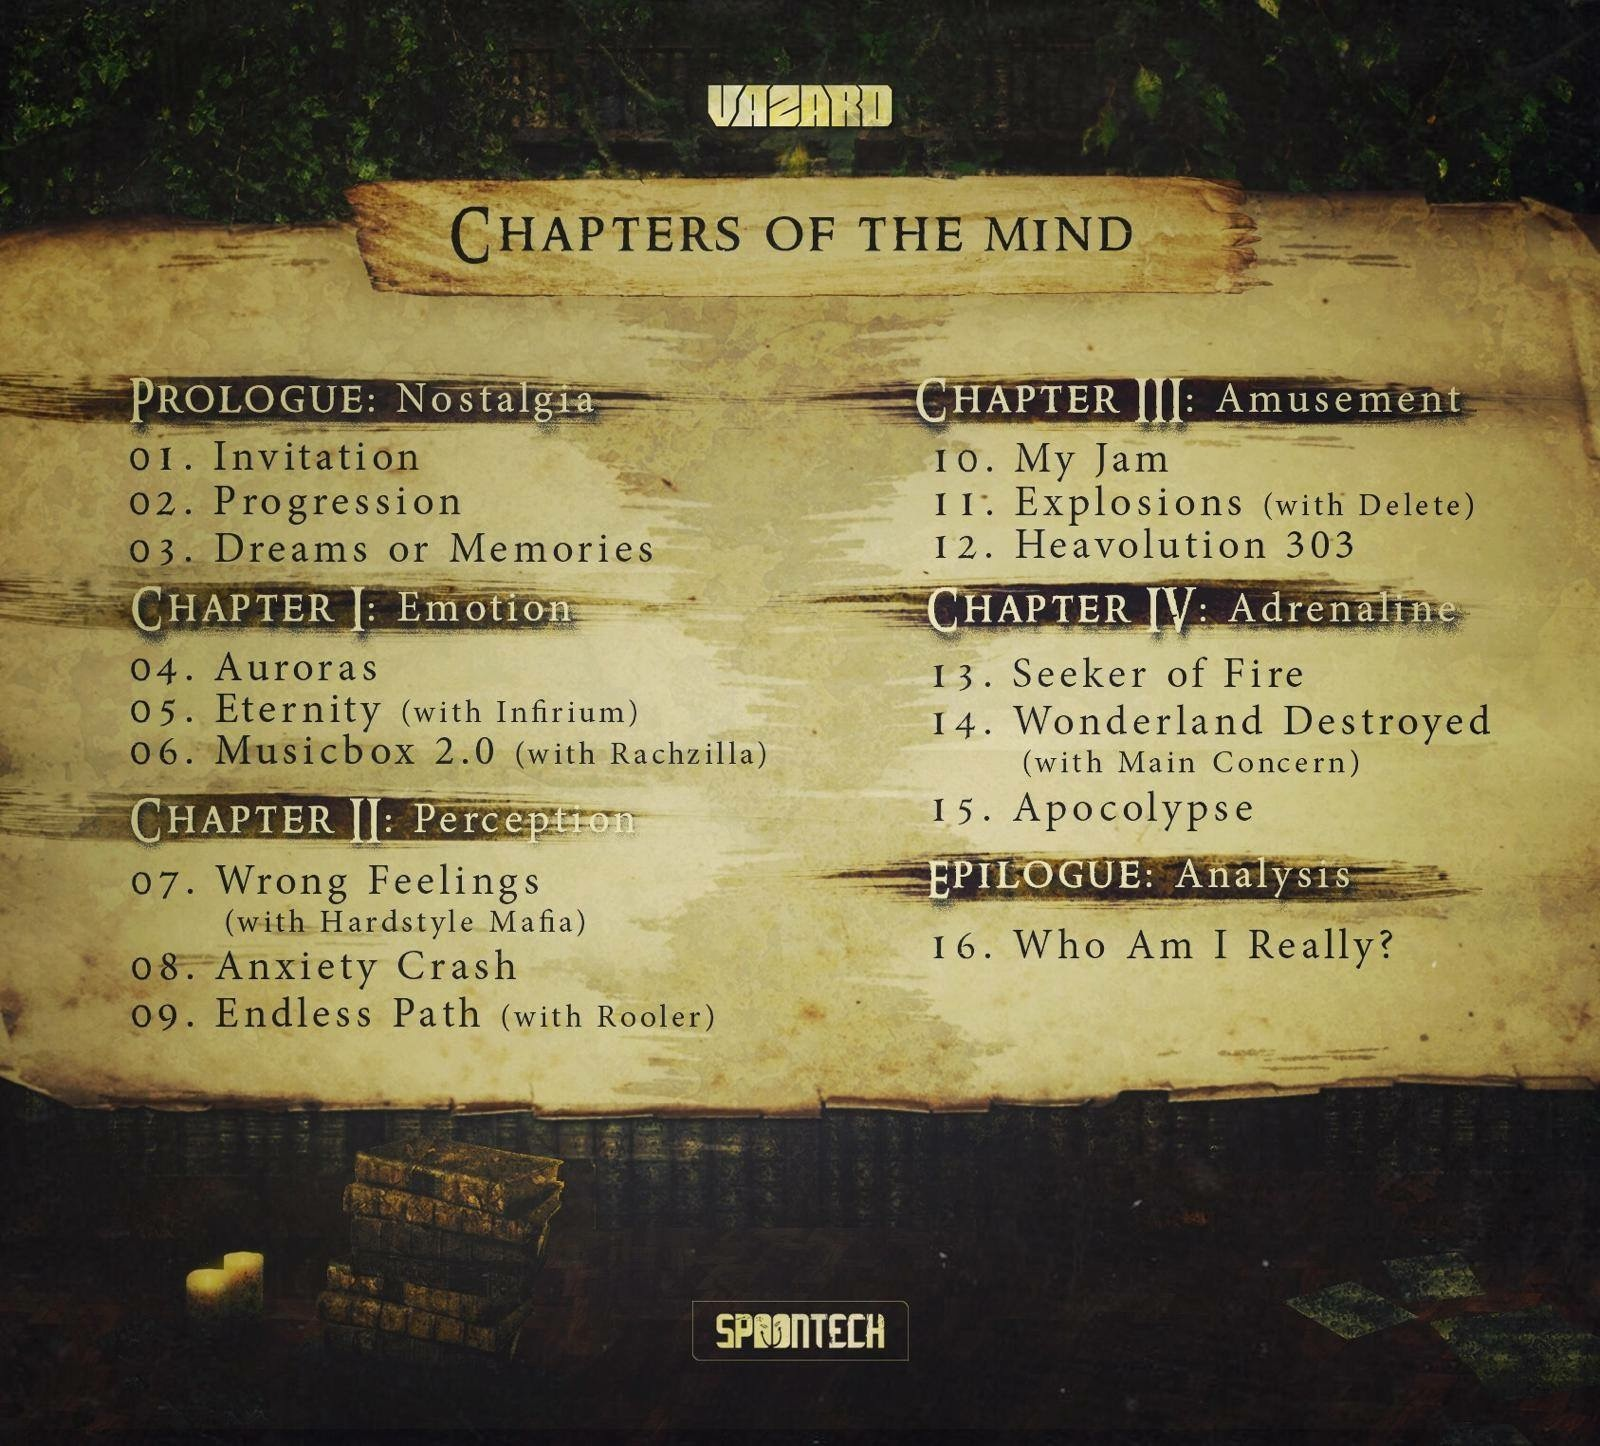 Vazard - Chapters of the Mind